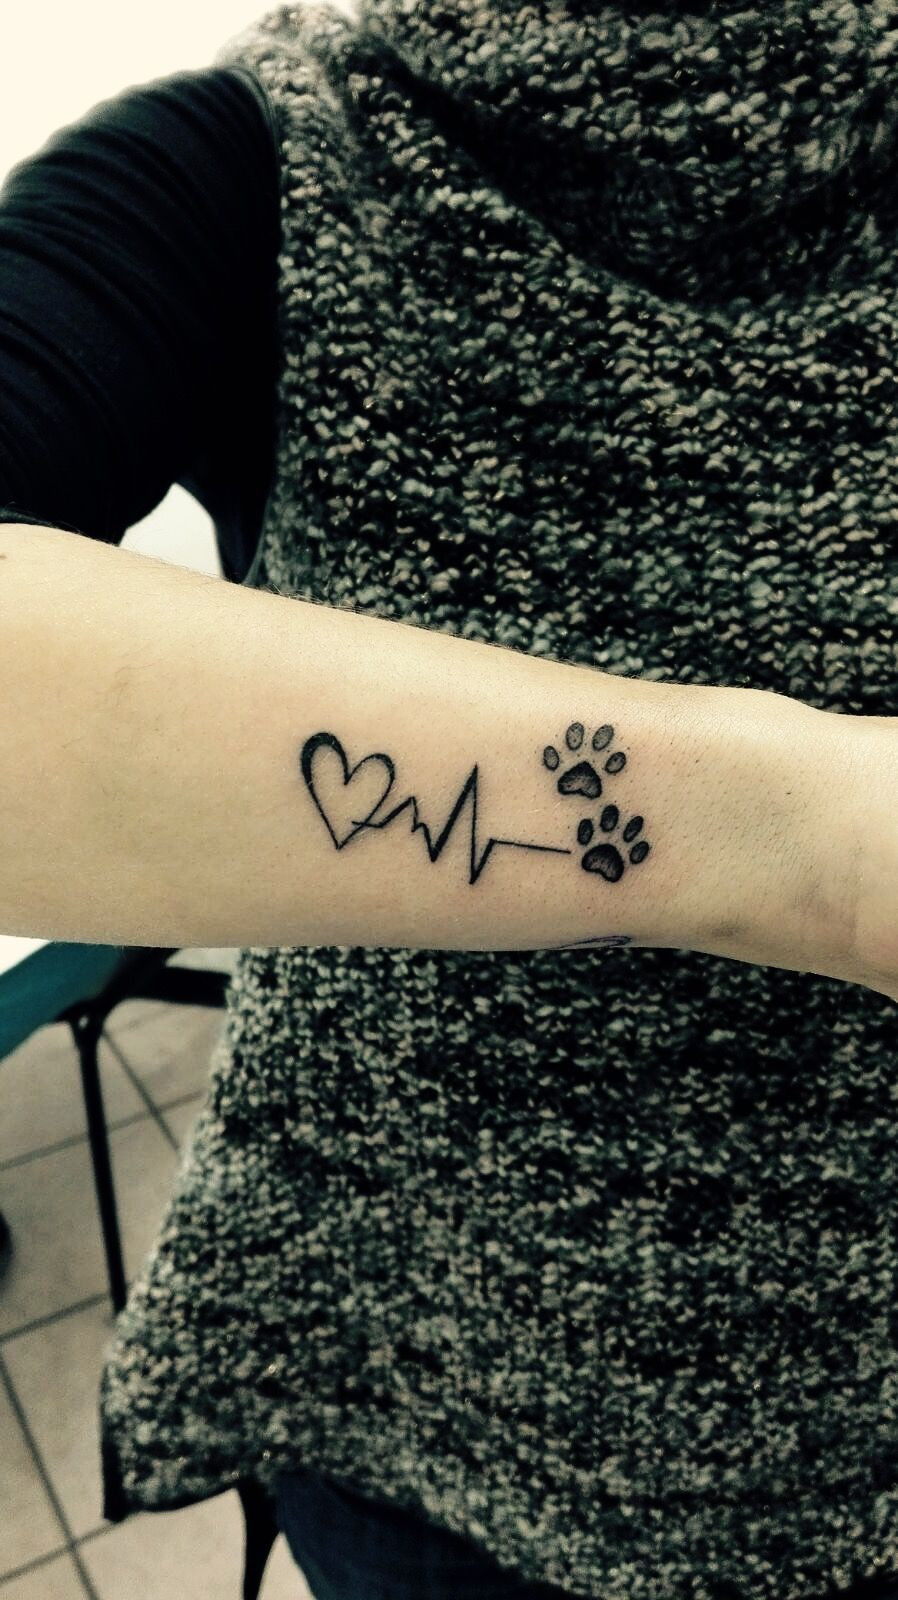 tattoo dog <3  #tatto#dog#zampette#tattocuore